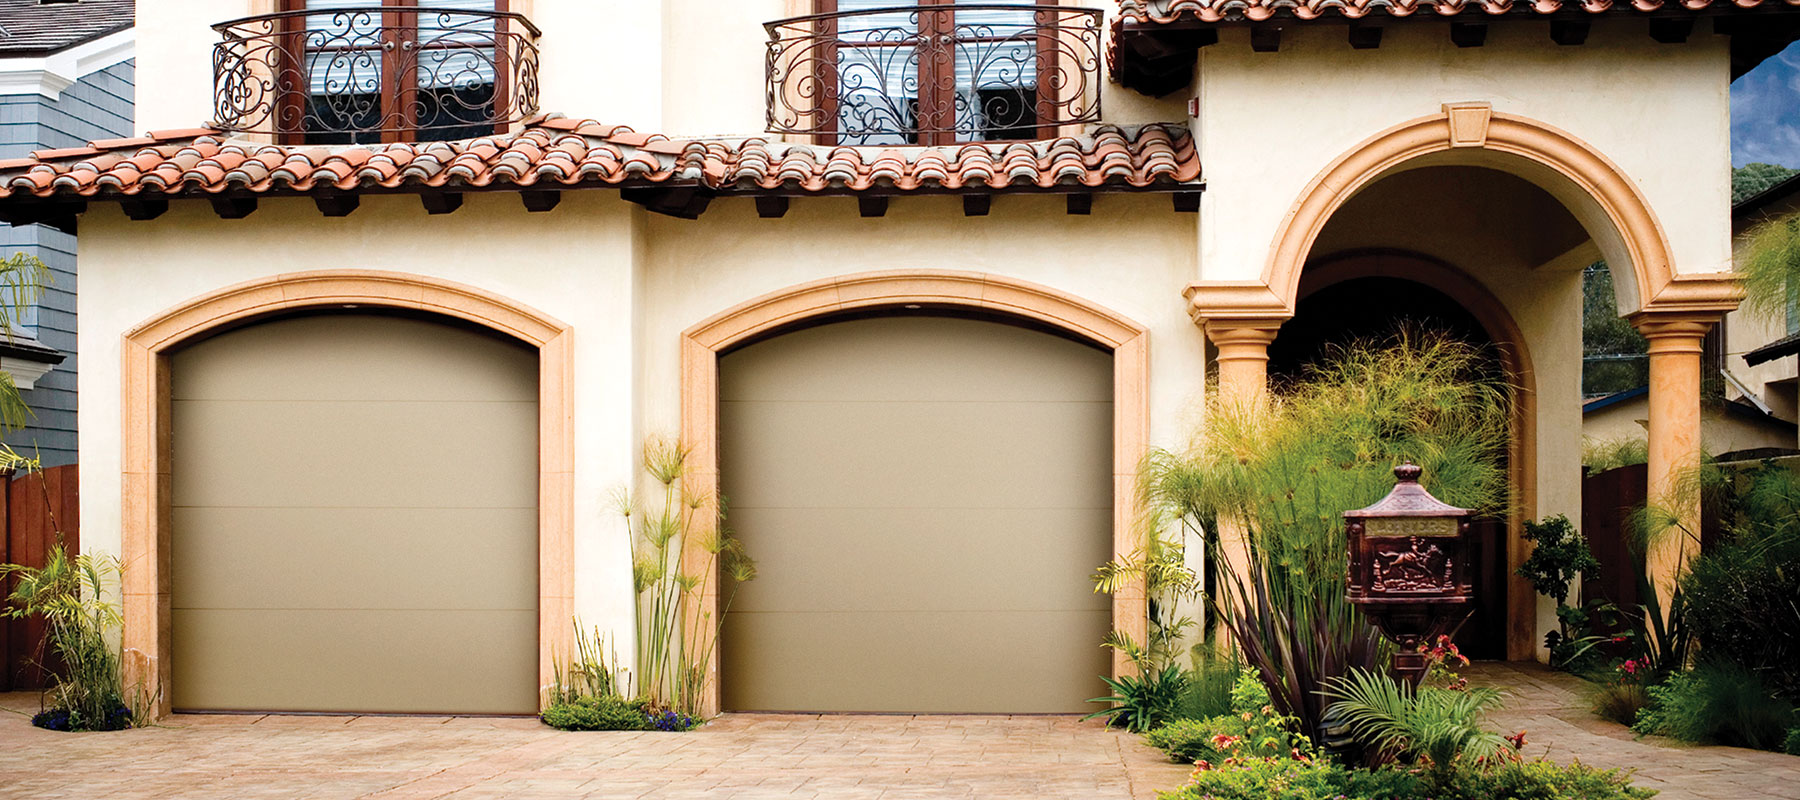 450/451 Flush Panel Garage Door